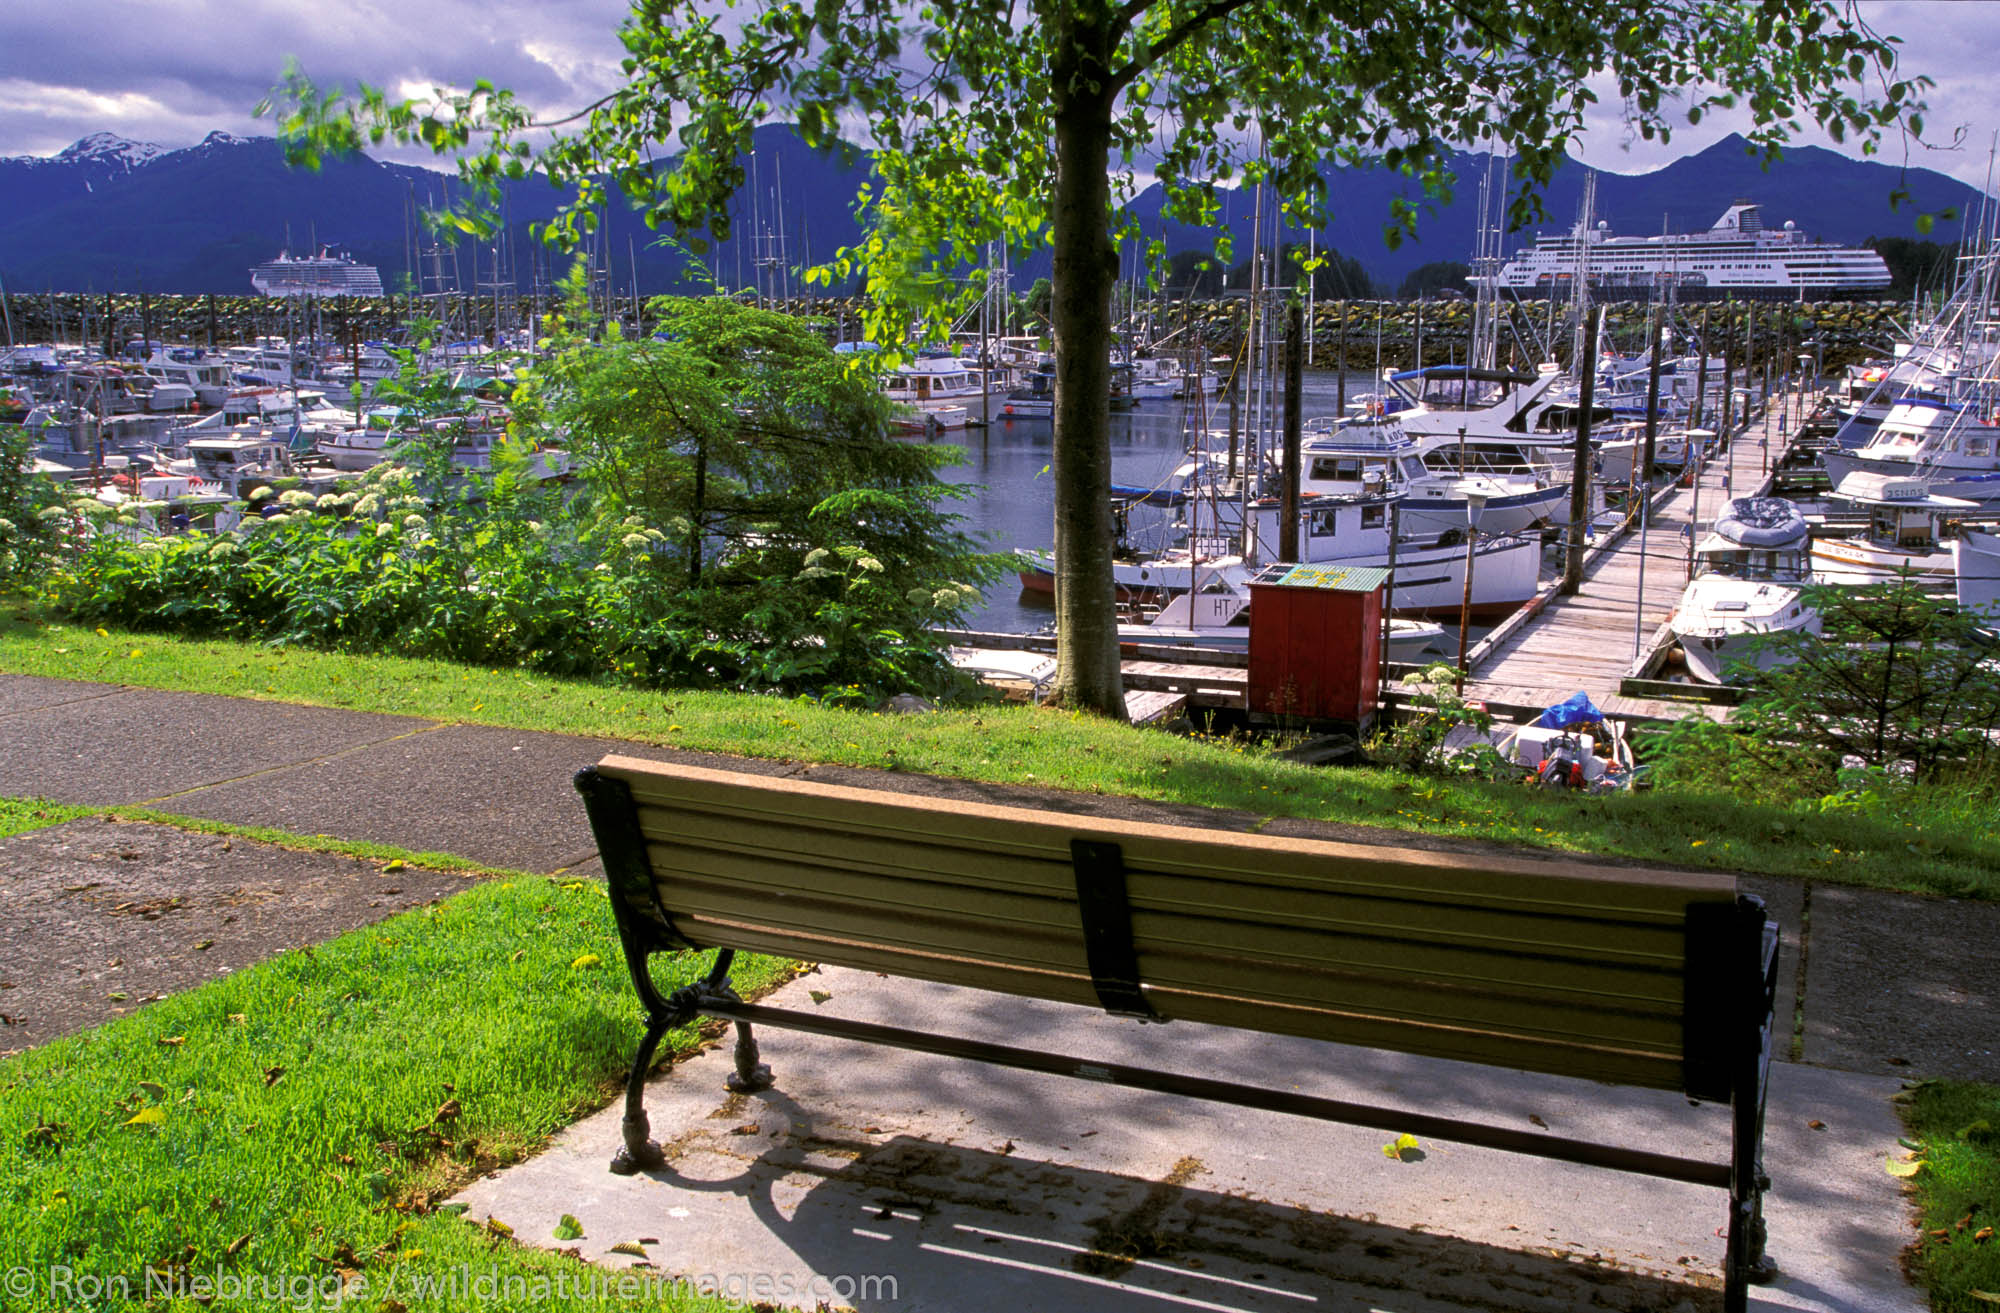 A bench near the boat harbor with cruiseships in the background, Sitka, Alaska.